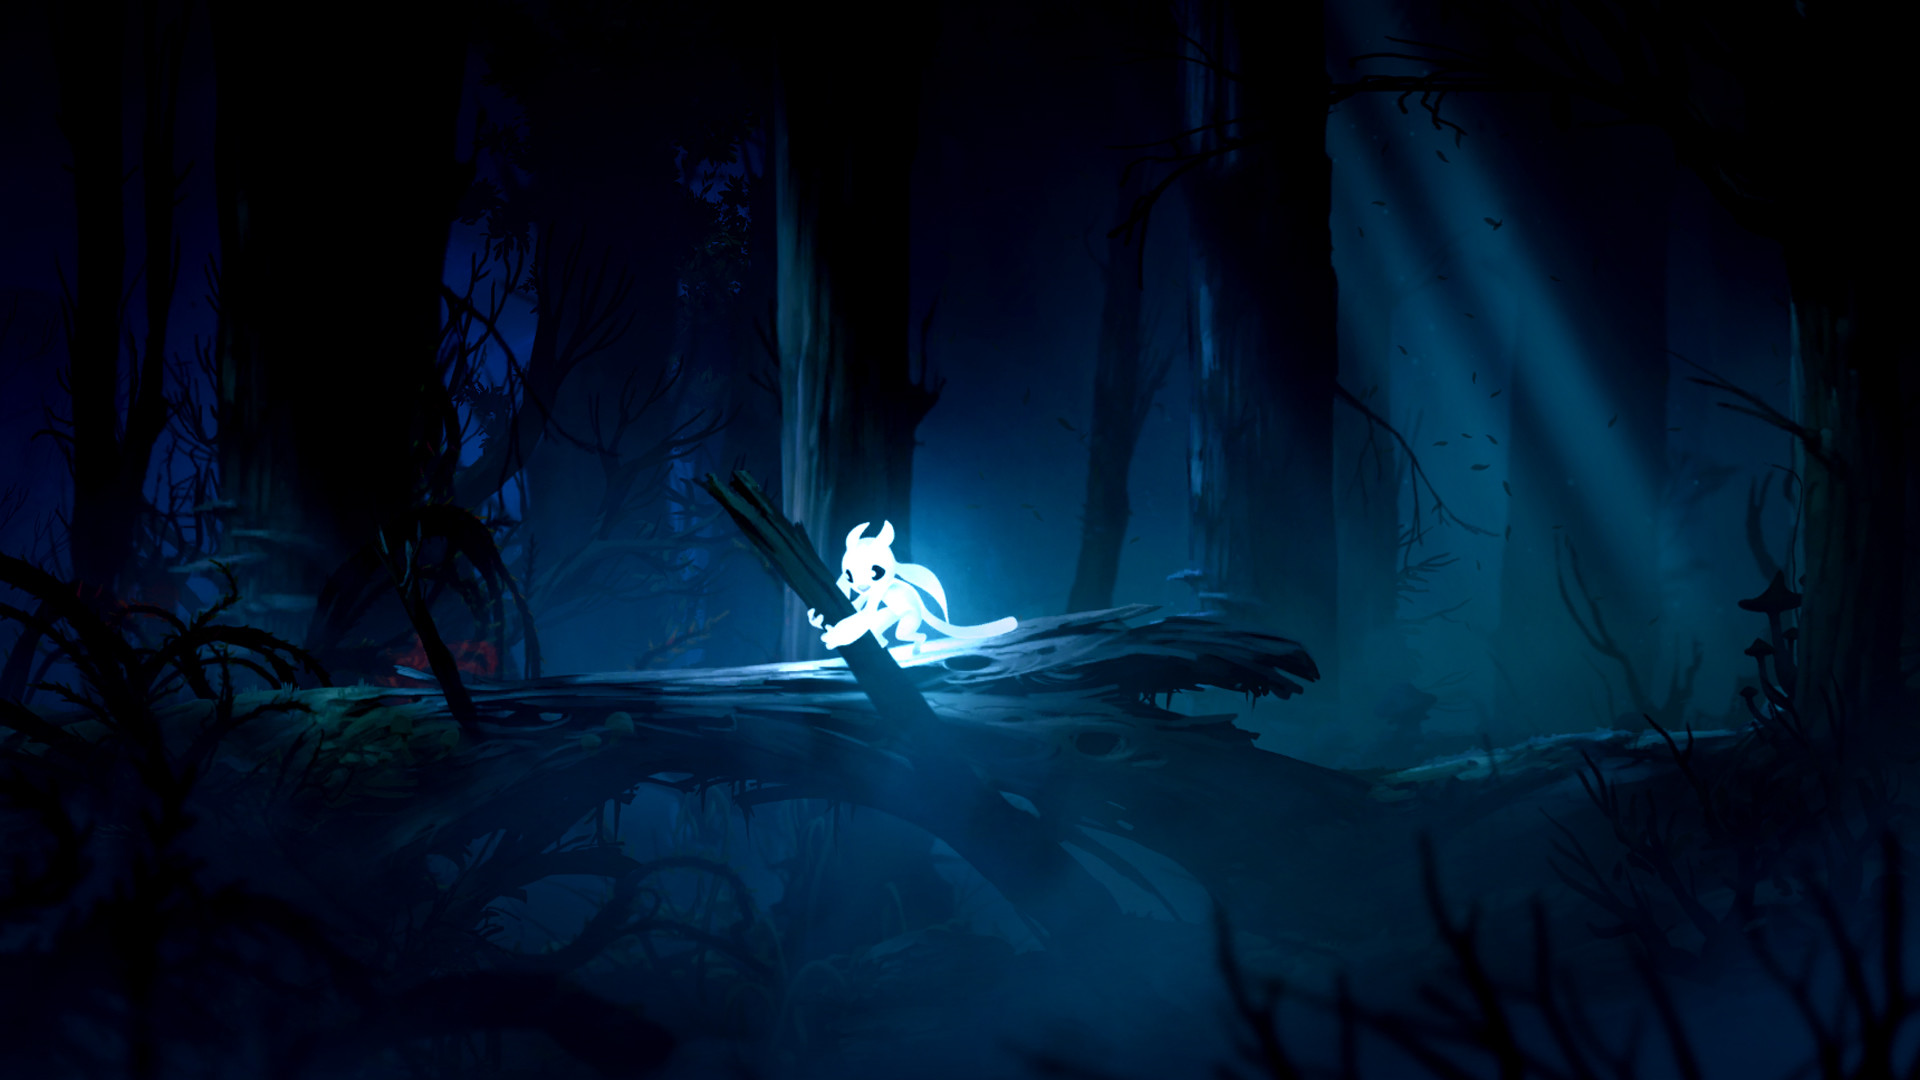 Ori and the Blind Forest: Definitive Edition image 1